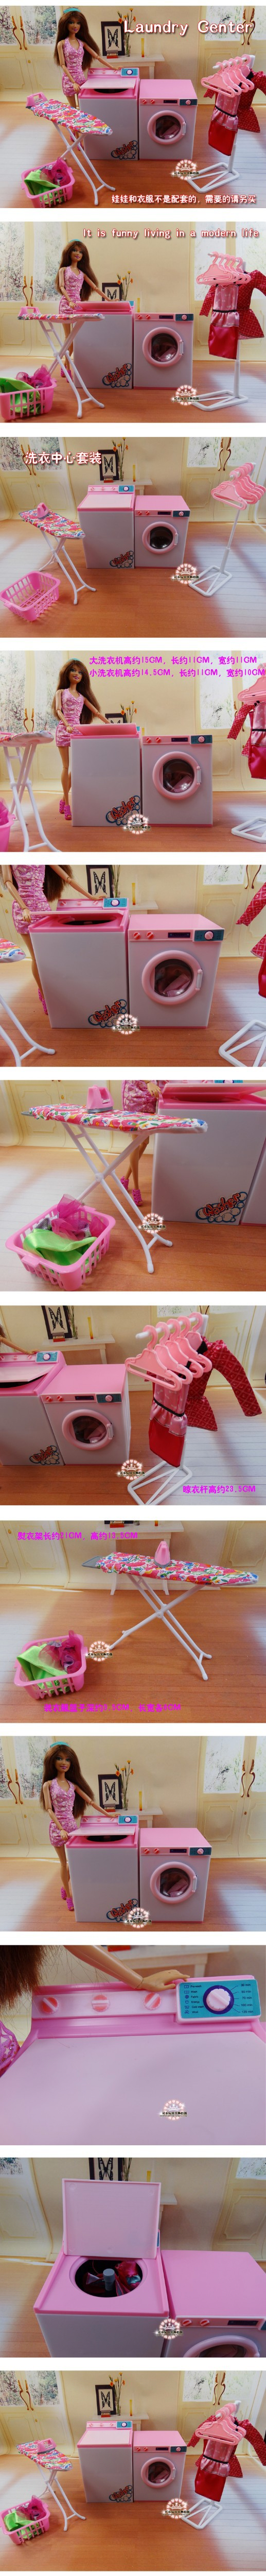 Free Delivery Lady birthday reward plastic Play Set dry cleaners Laundry Middle doll equipment for barbie doll,doll furnishings